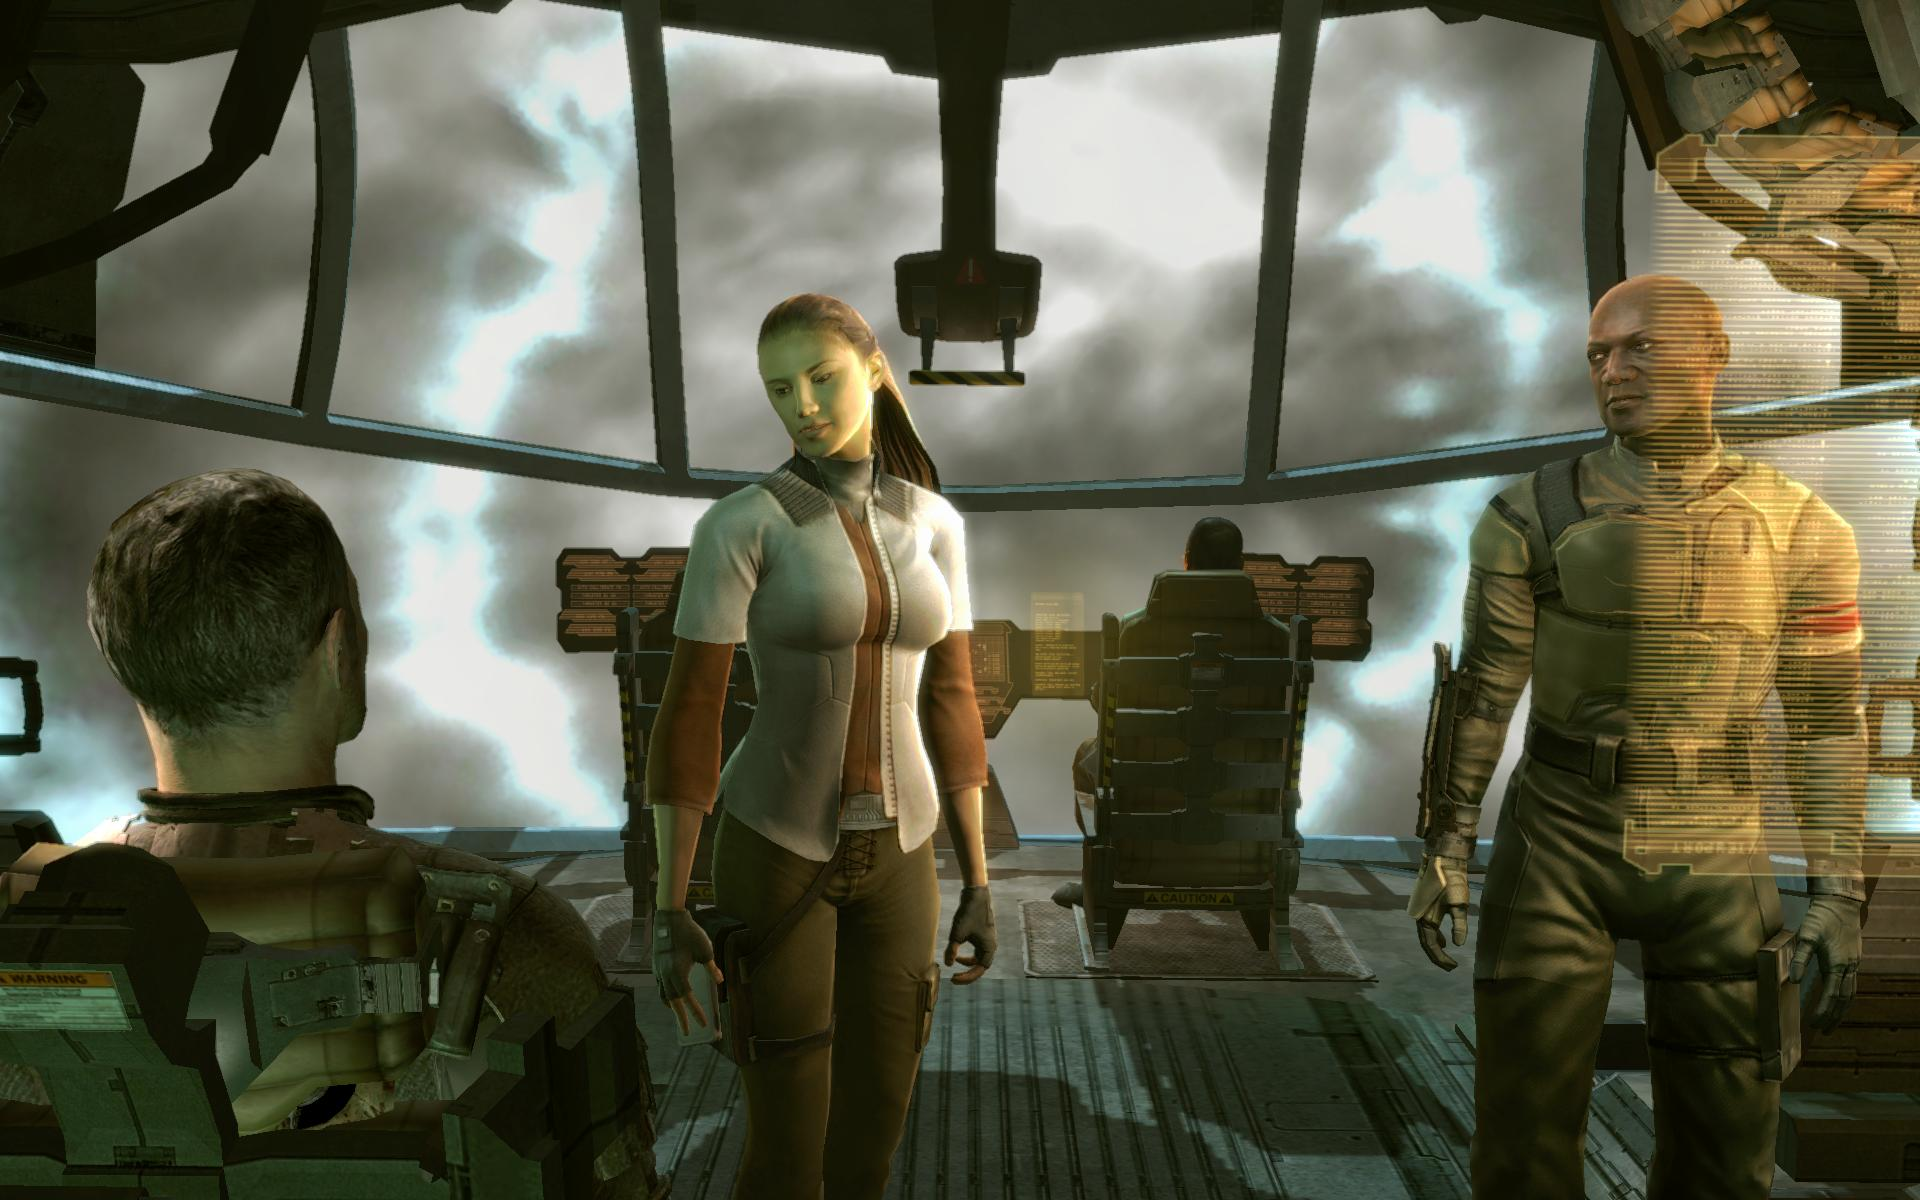 dead-space-2011-01-23-23-27-14-82